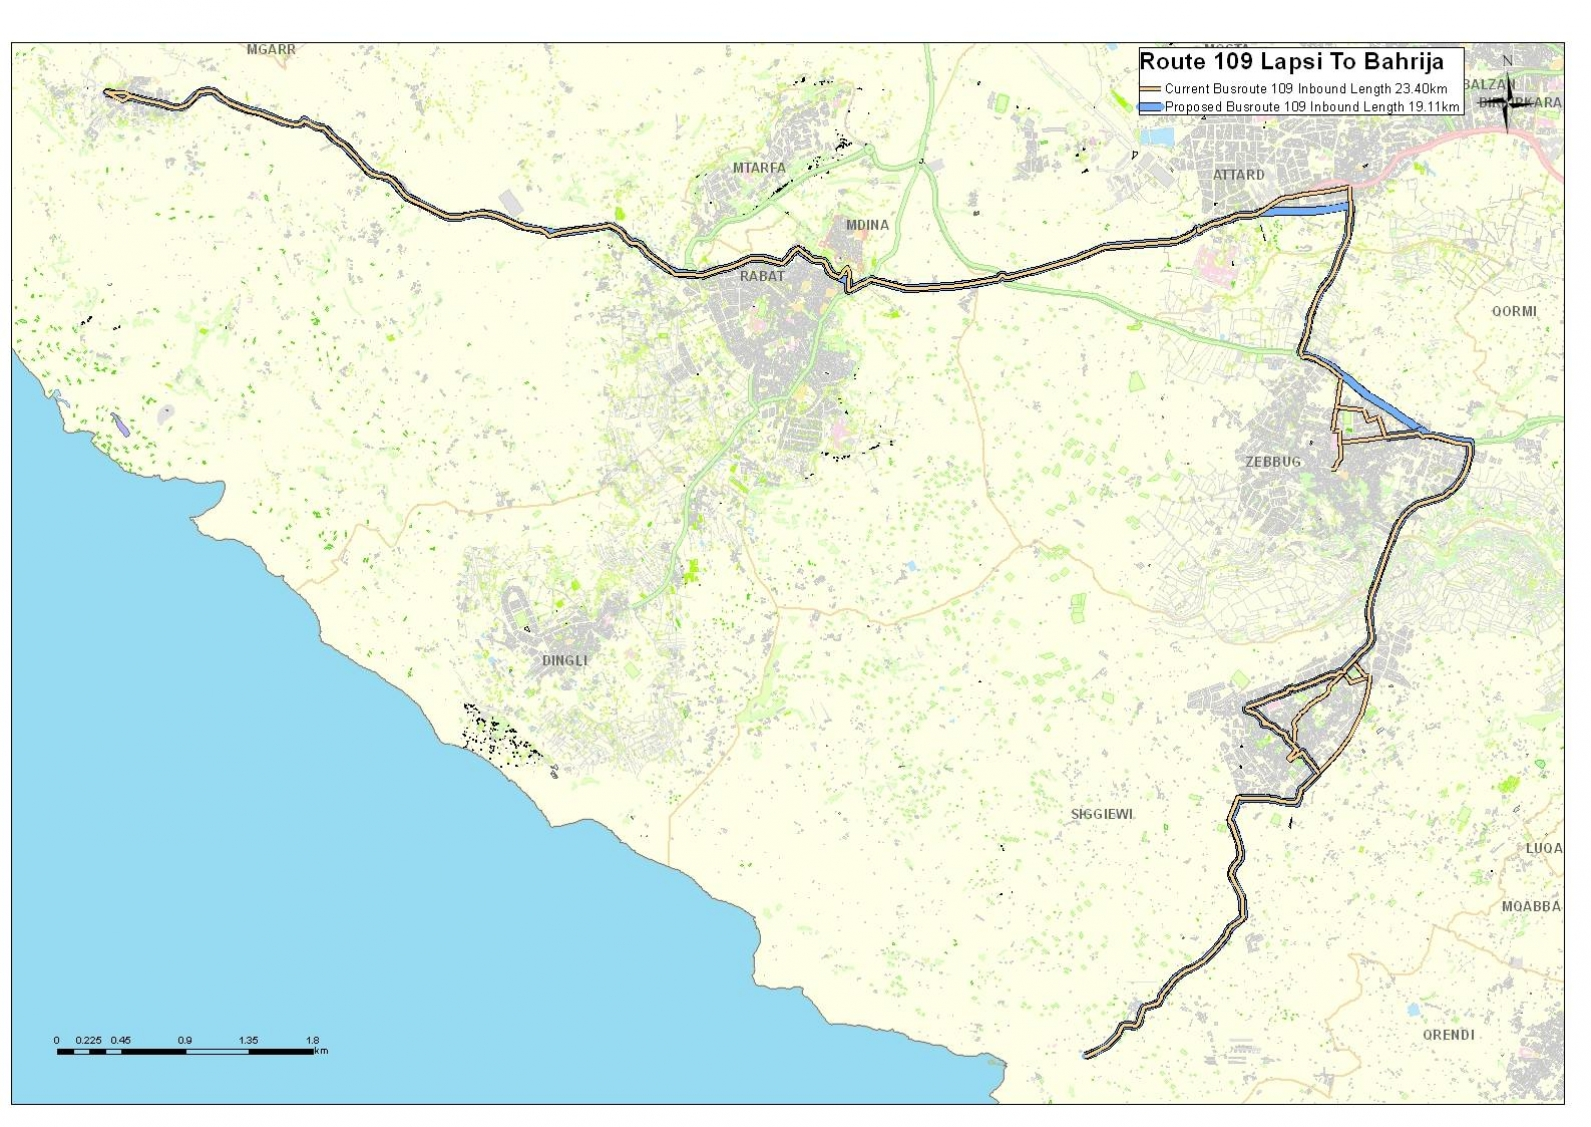 Land-current-network-routes-and-schedules-Dingli-Mtarfa-Rabat-12